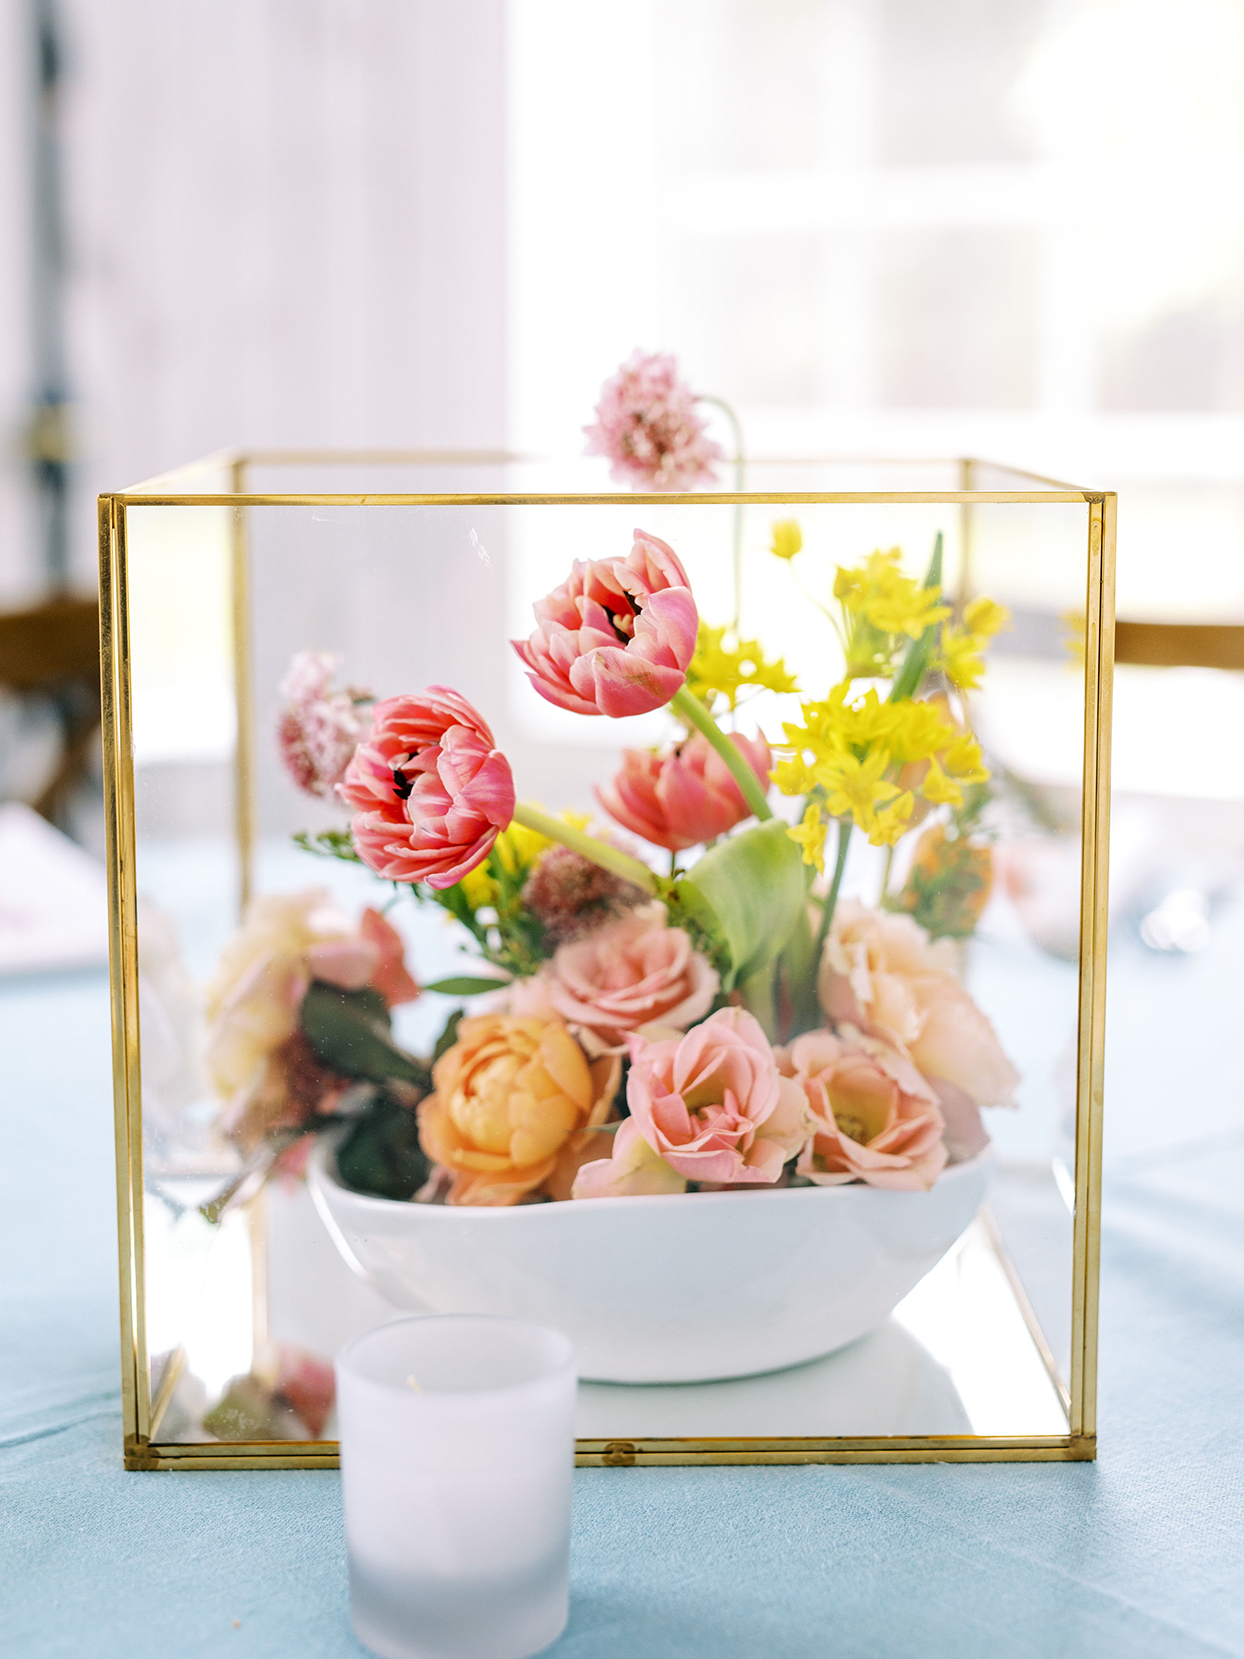 evie joe wedding reception centerpiece bouquet in glass display box